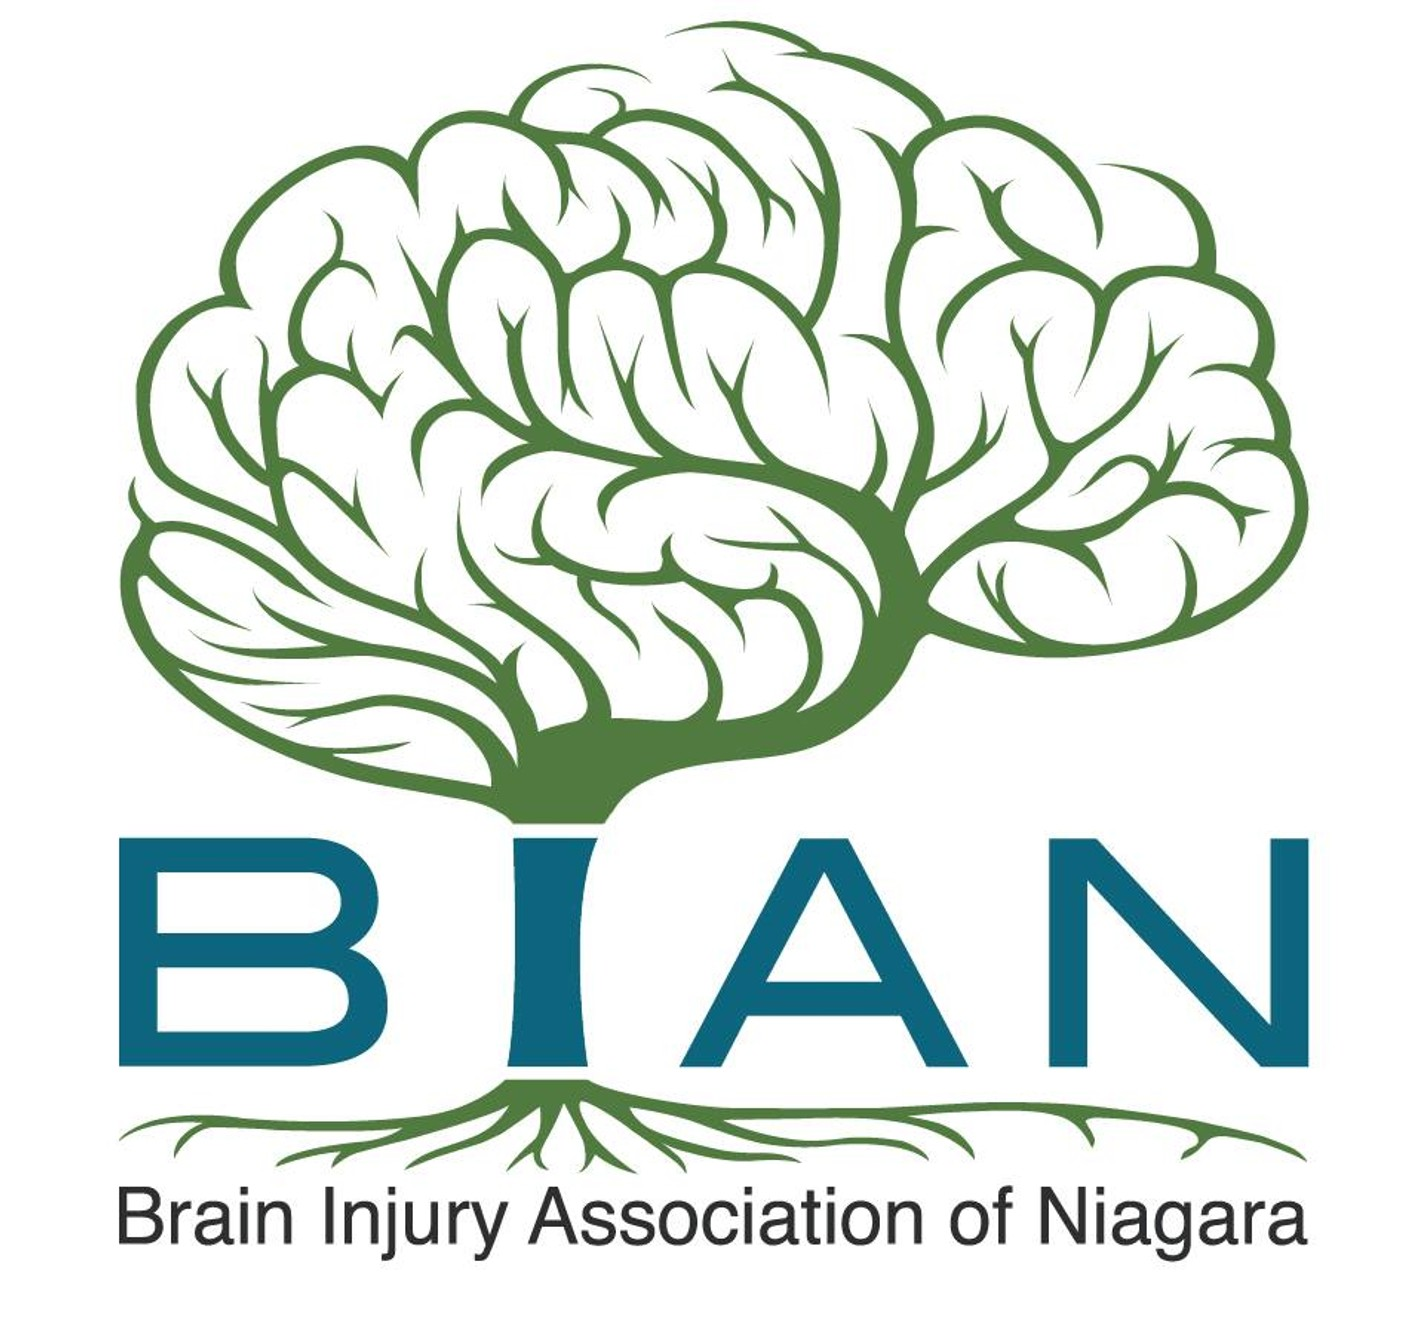 Brain Injury Association of Niagara logo